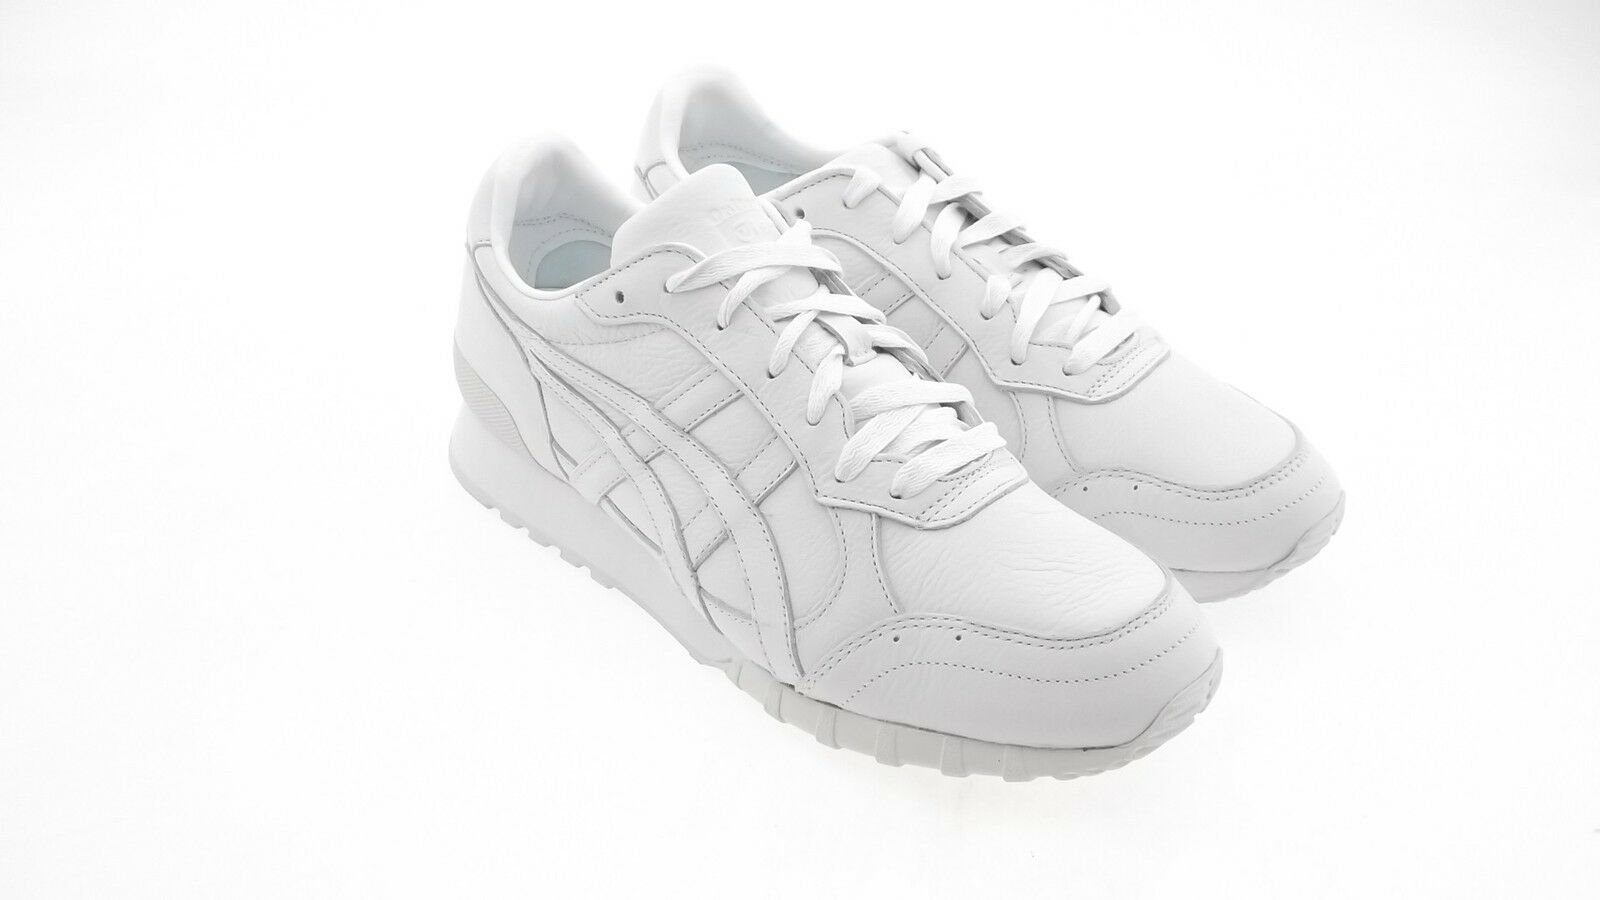 Asics Onitsuka Tiger Tiger Tiger Uomo Colorado Eighty-Five (white / white) D5A0K-0101 f5c95a